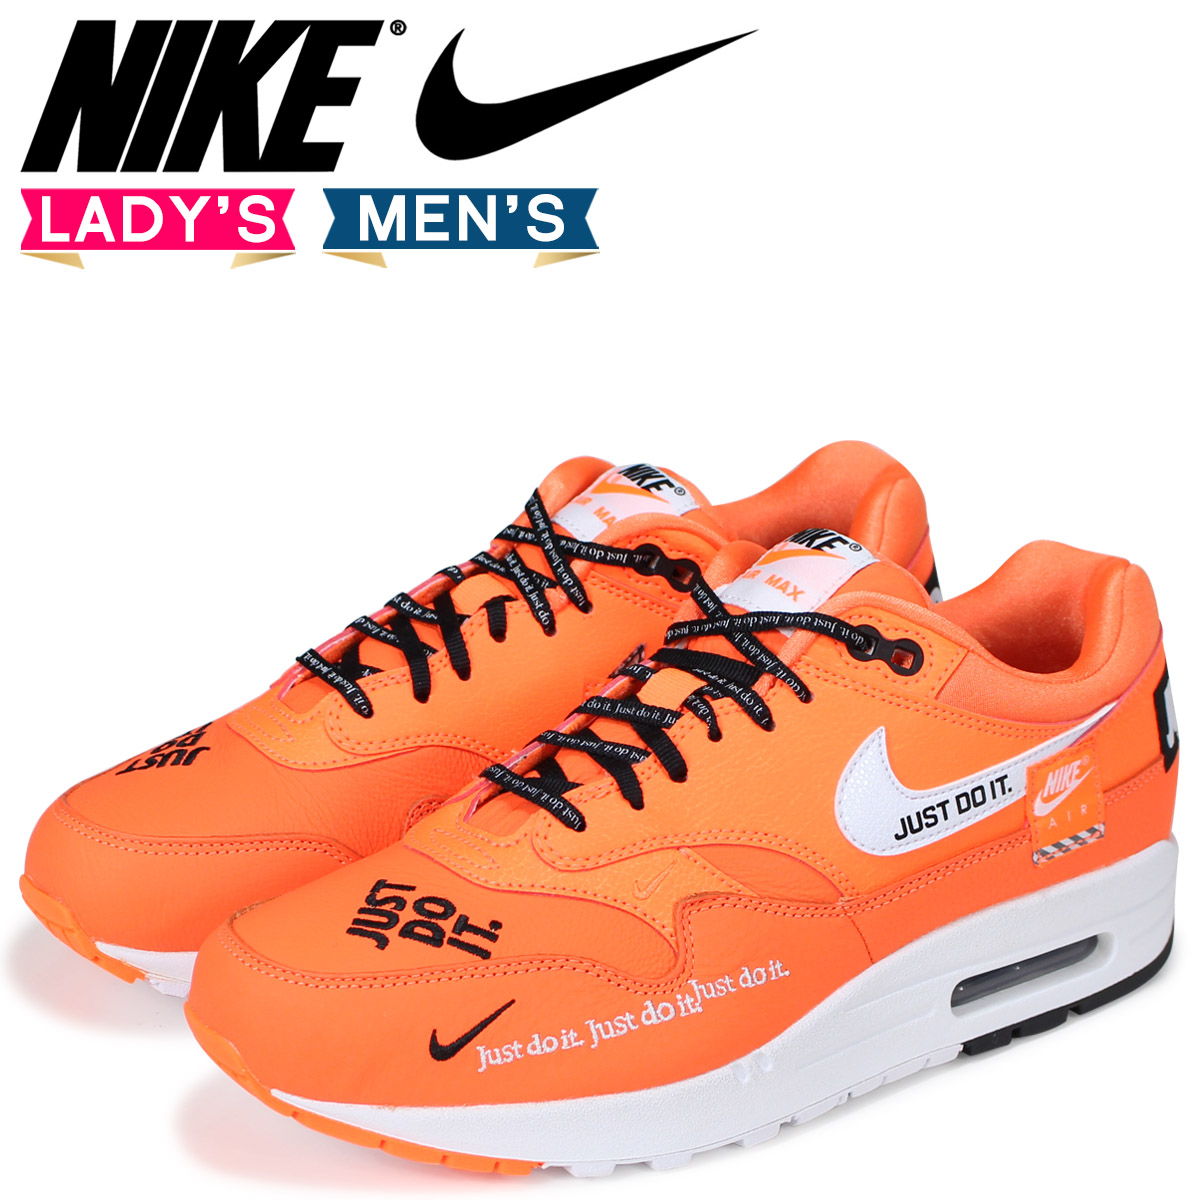 new concept c5ea3 ee26d NIKE Kie Ney AMAX 1 ladys mens sneakers WMNS AIR MAX 1 LX 917,691-800  orange load planned Shinnyu load in reservation product 713 containing